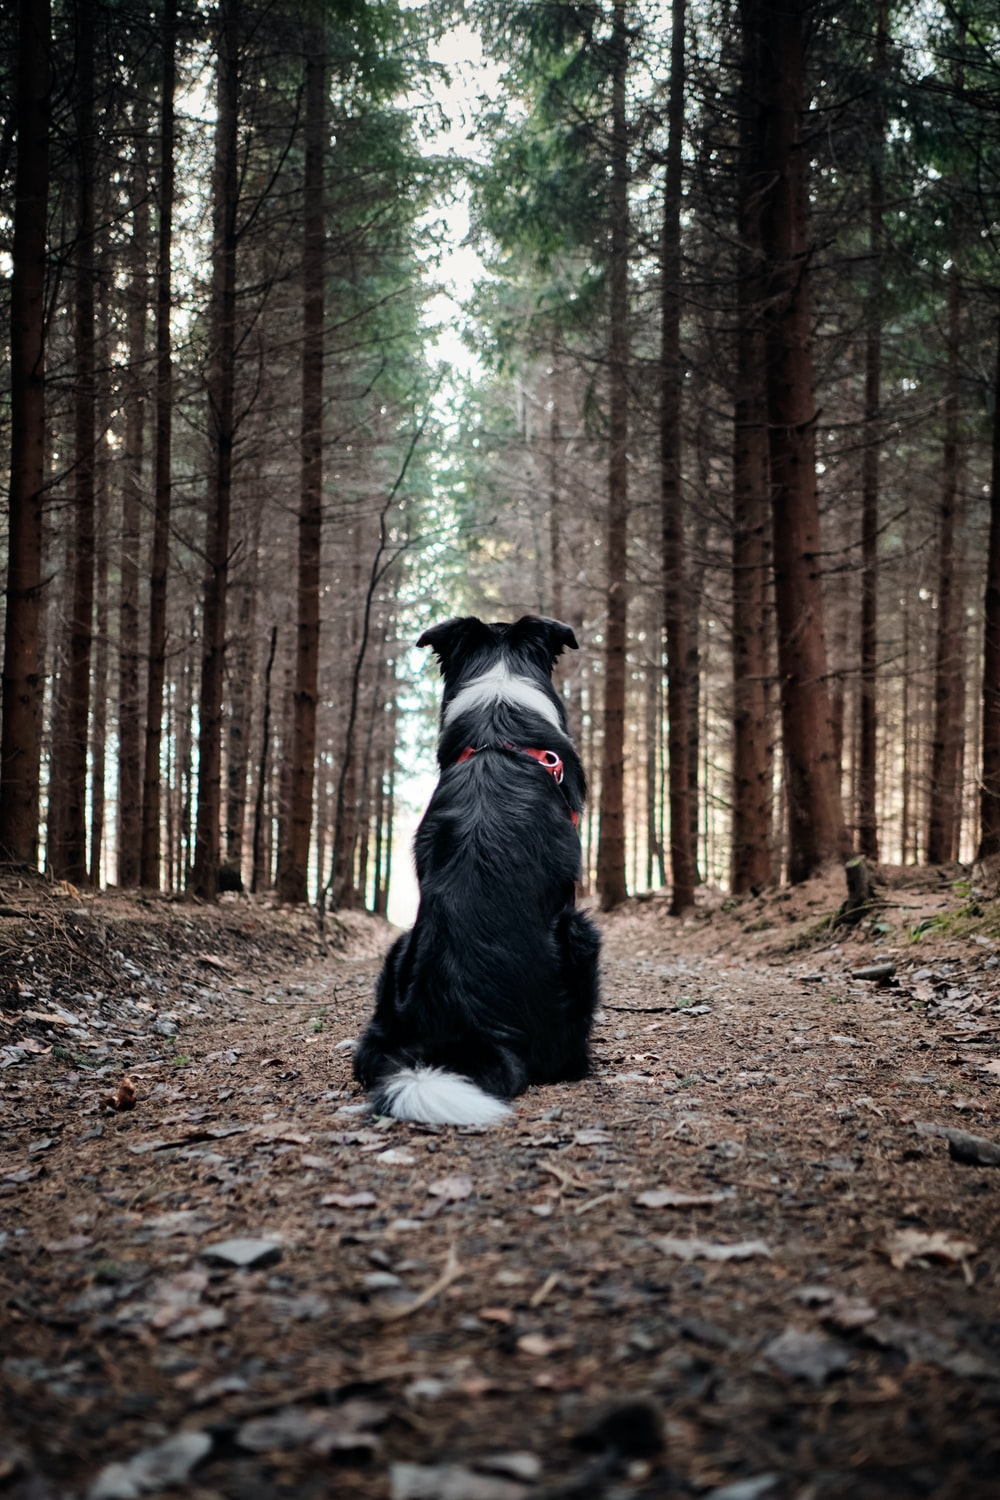 black and white border collie sitting on ground surrounded by trees during daytime